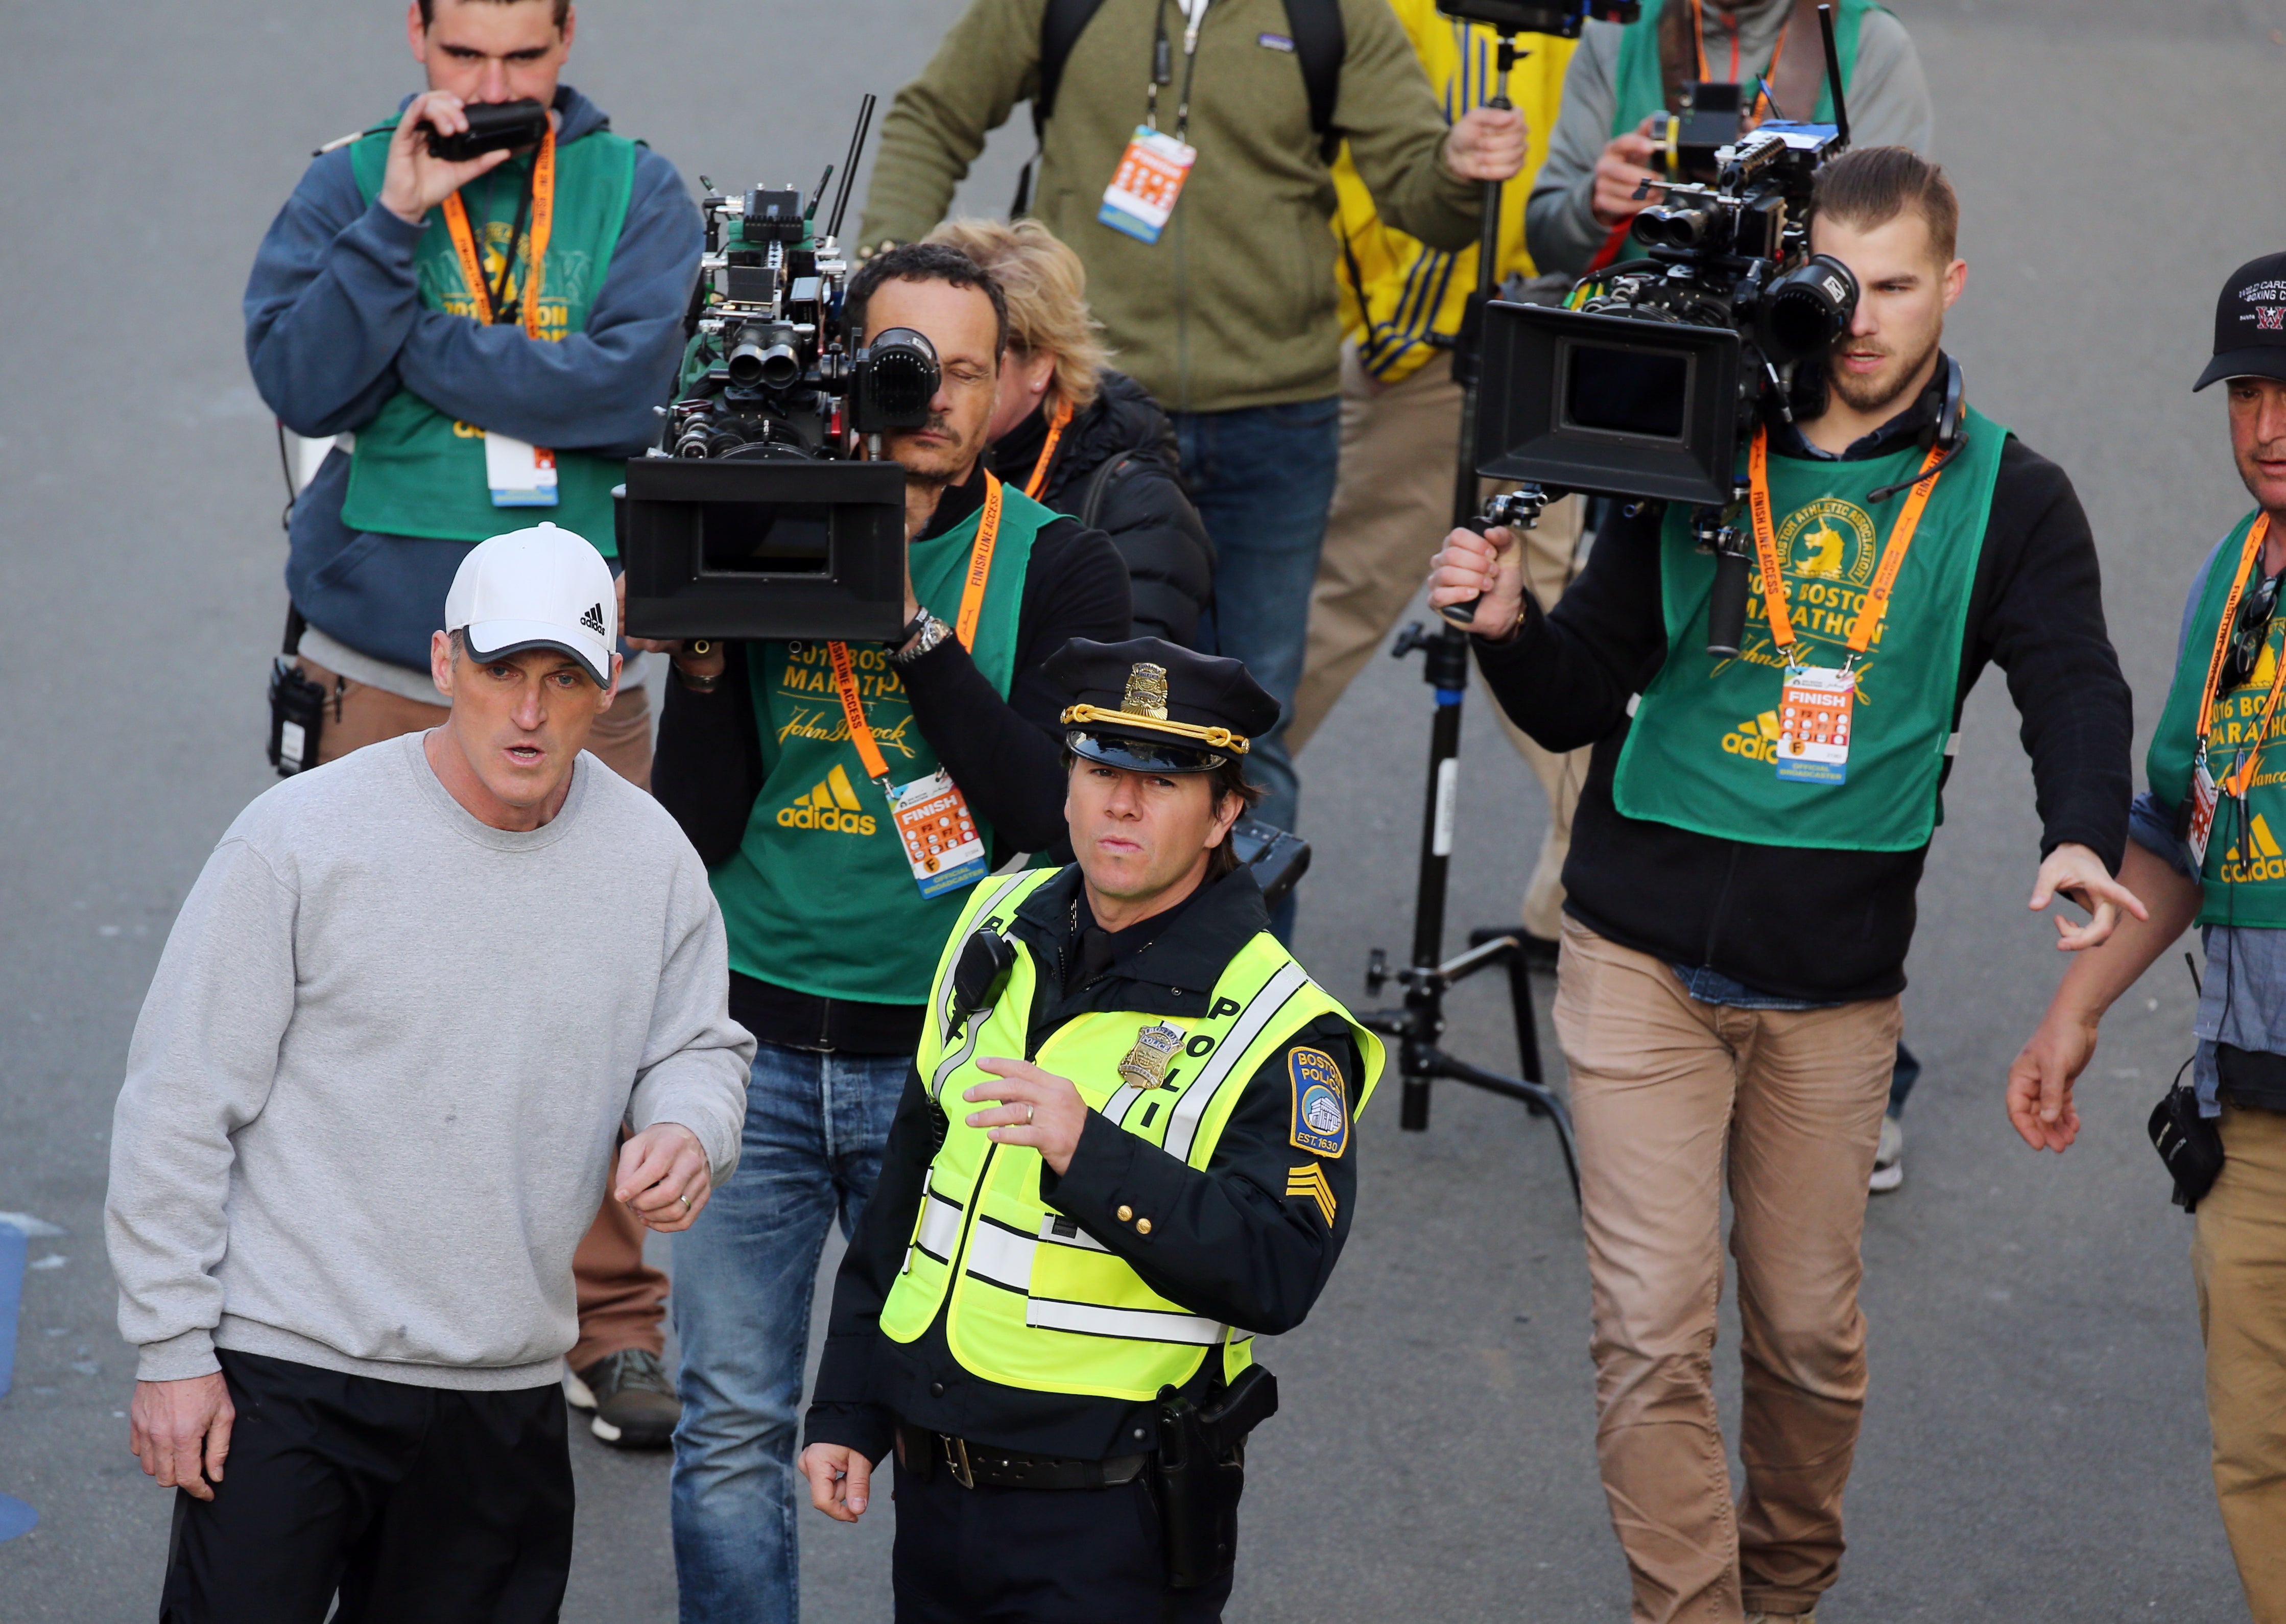 Mark Wahlberg filing a scene for Patriots Day at the finish line of the 120th Boston Marathon.